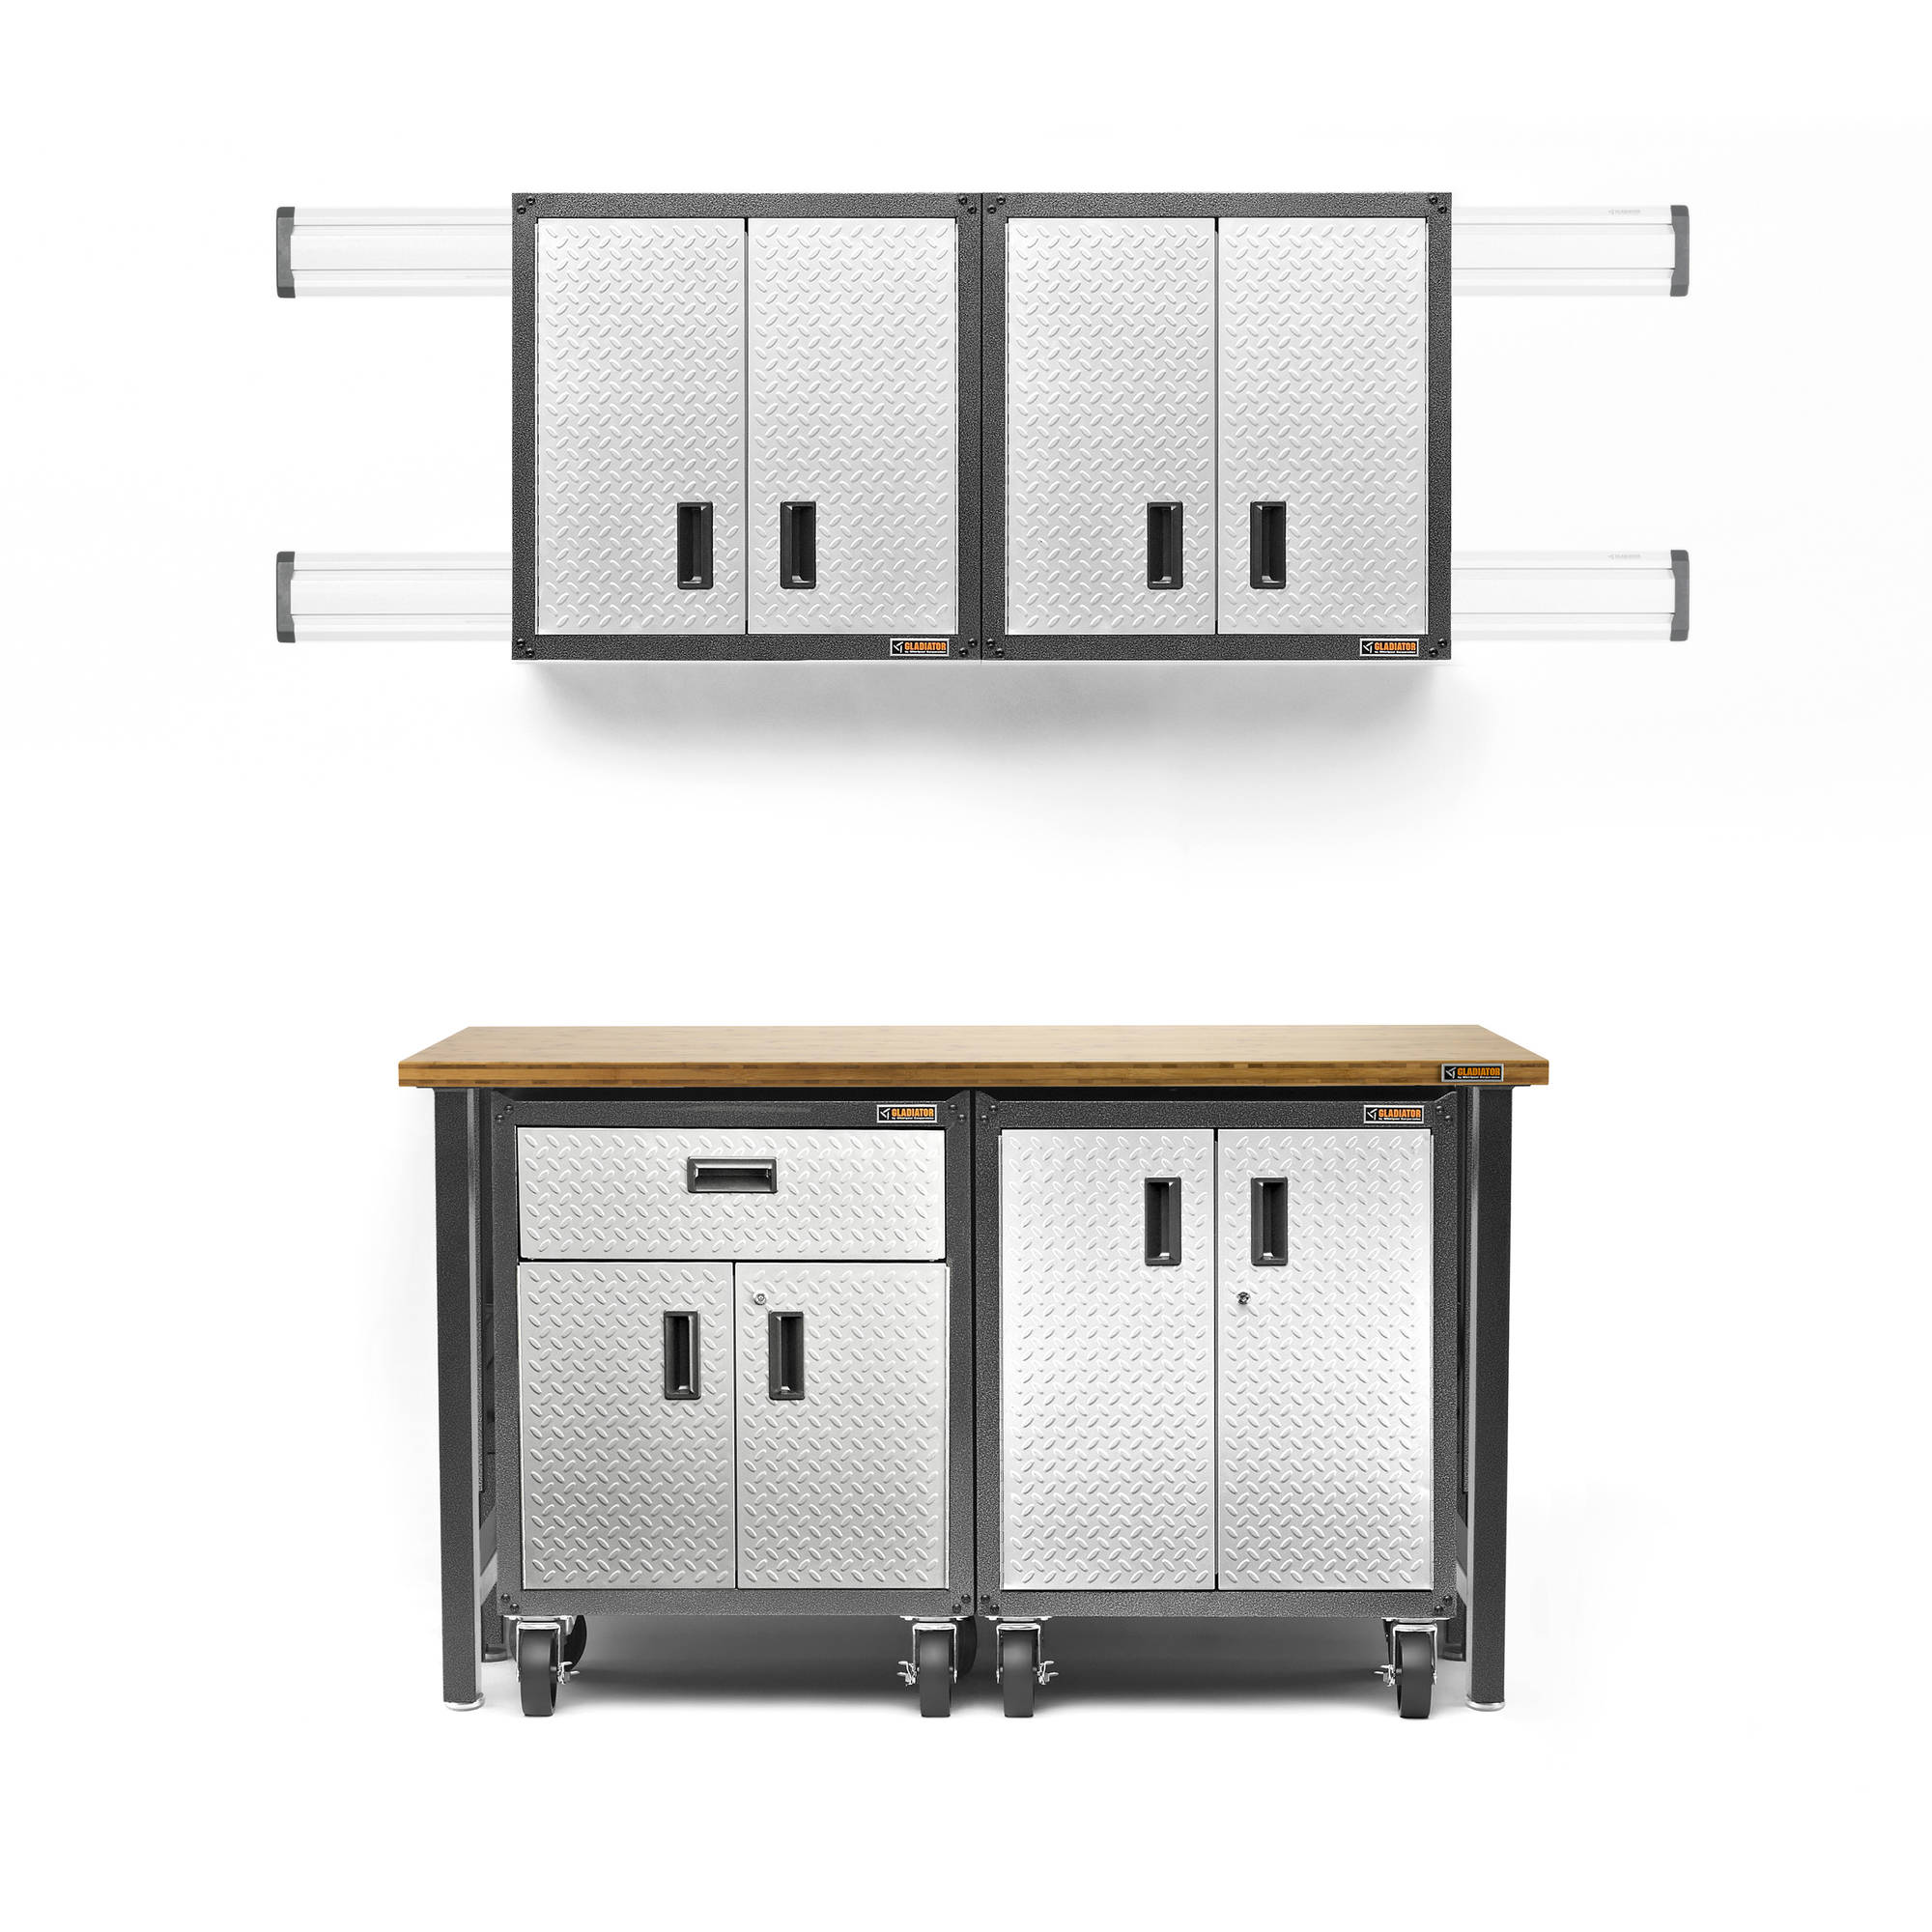 gladiator 28 in w x 12 in d x 28 in h steel fulldoor garage wall cabinet with shelf in silver tread walmartcom - Gladiator Shelving